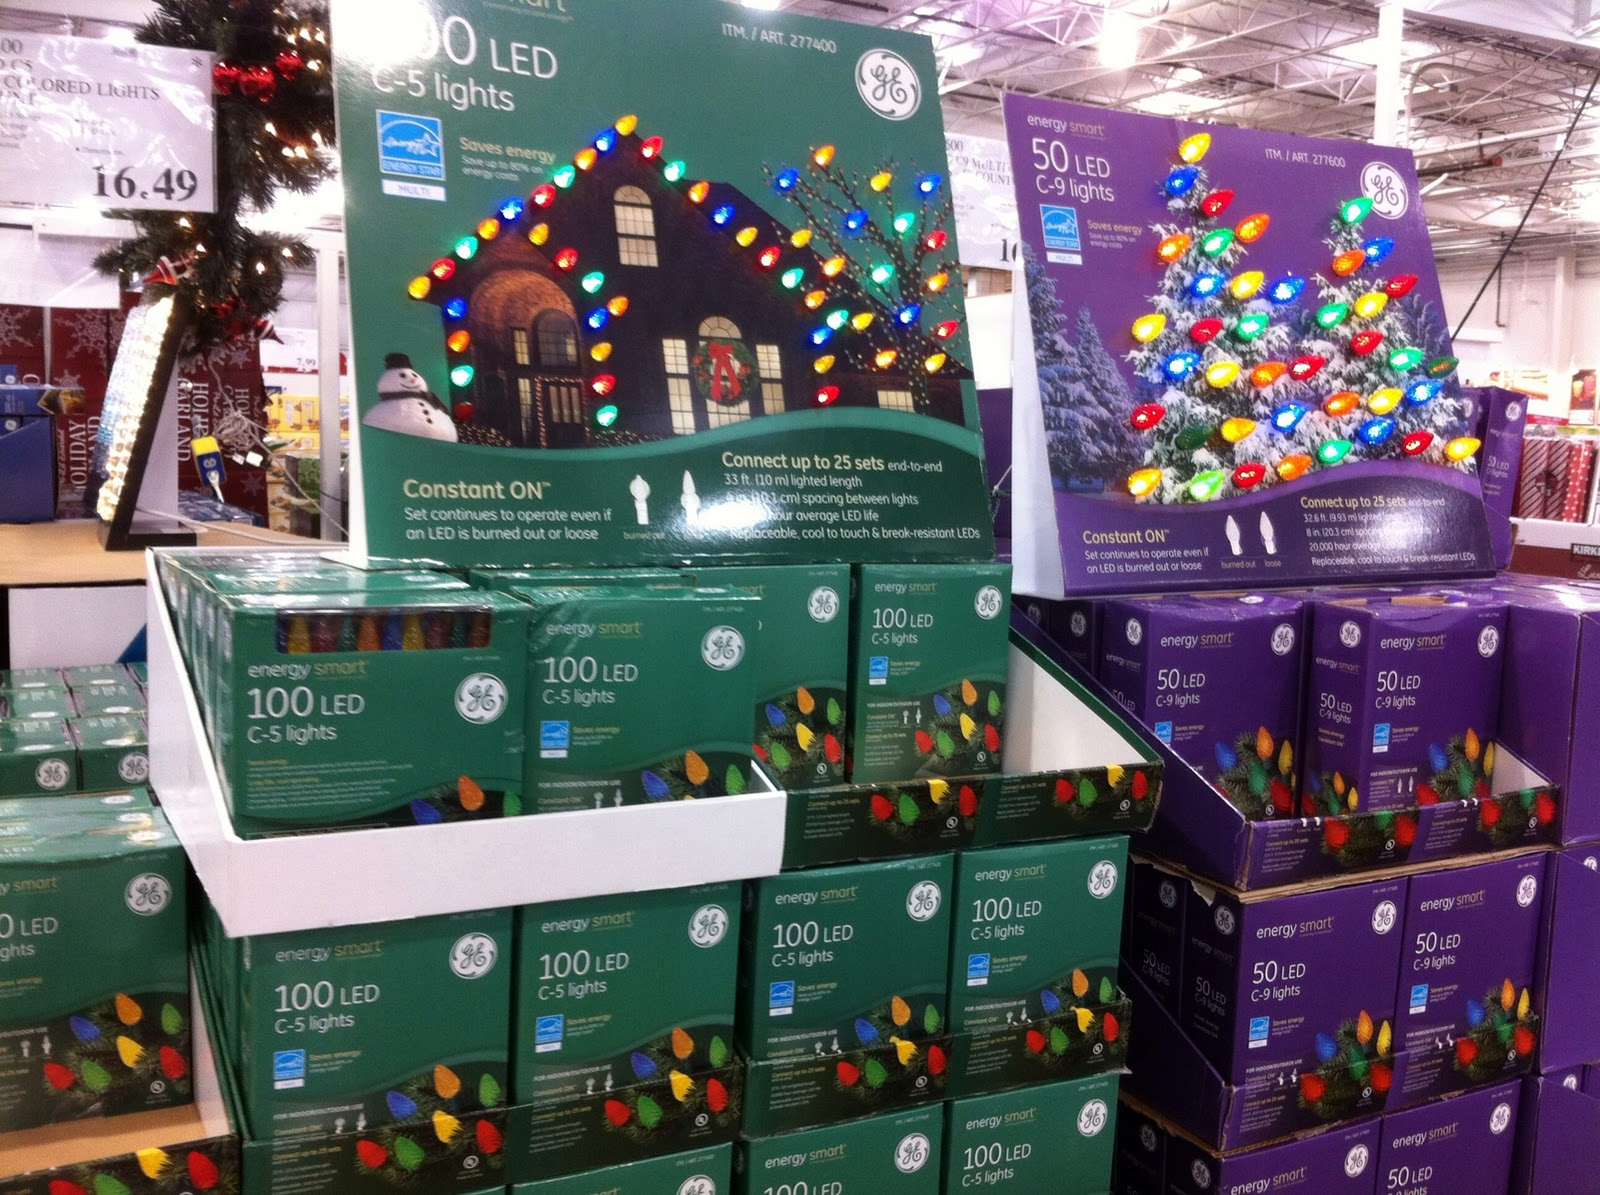 merry costco christmas friday tidings costco selling christmas lights in augustalways thinking ahead costco christmas trees christmas decorations